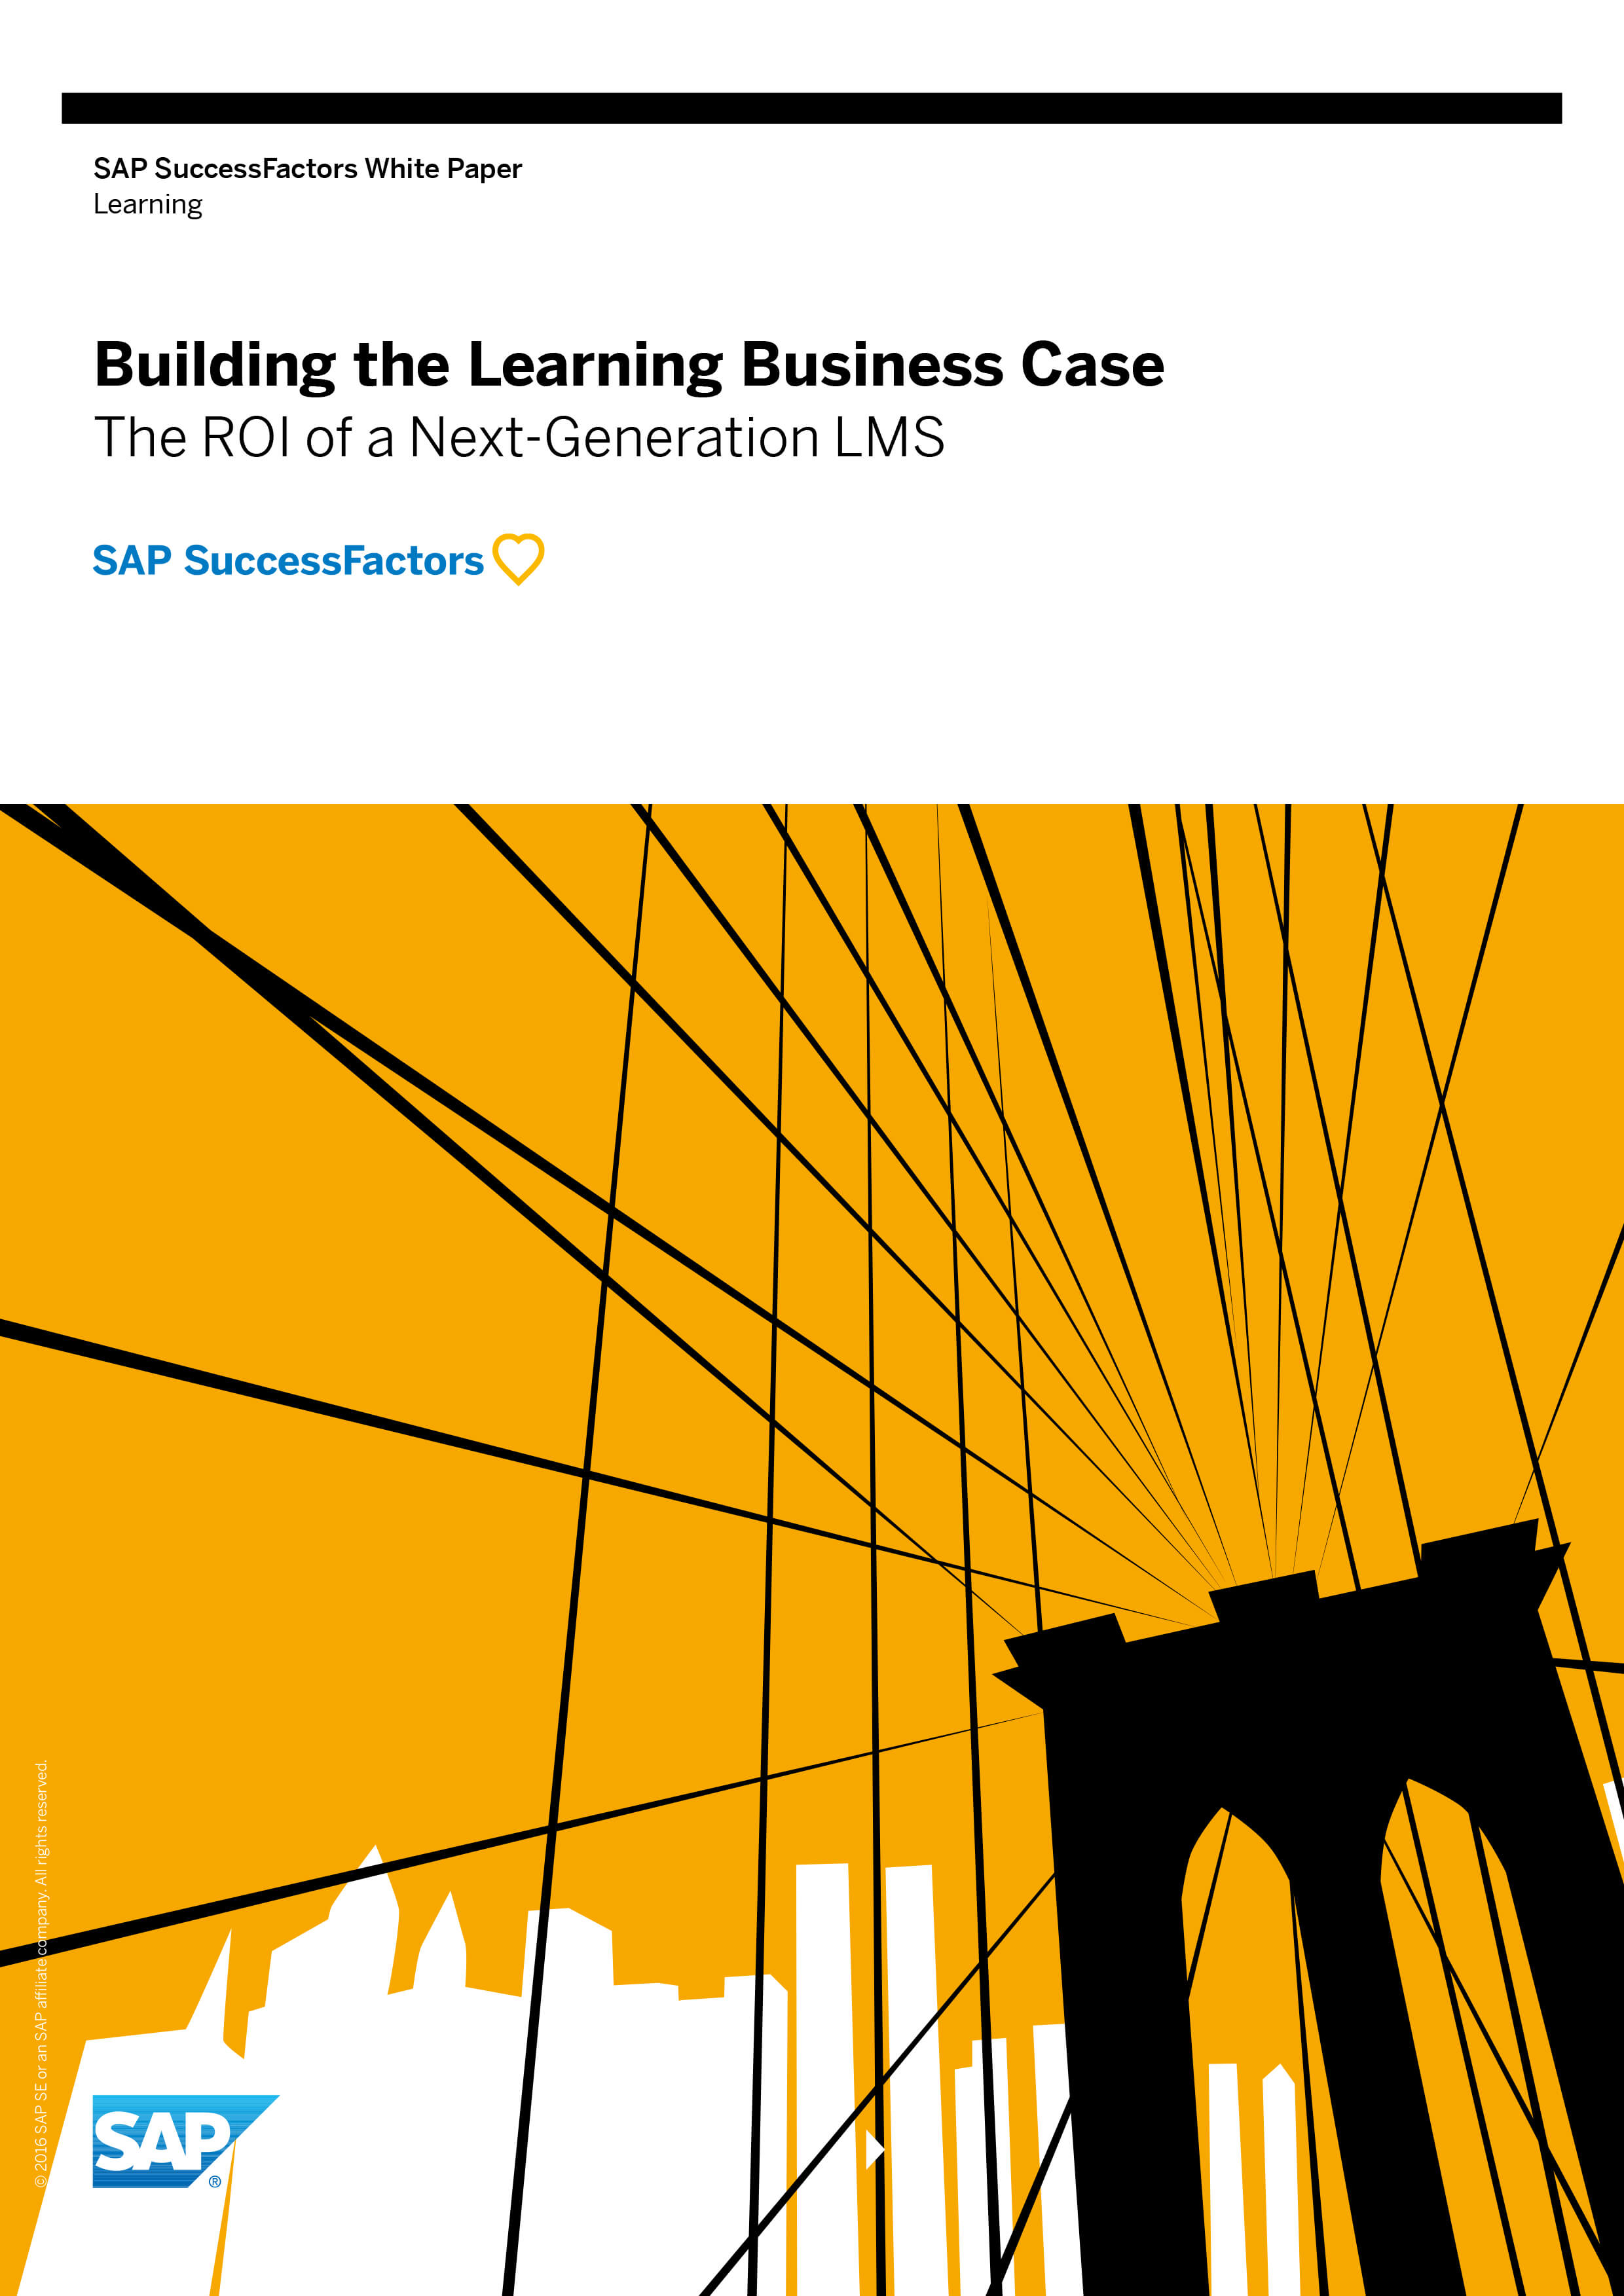 SAP SuccessFactors Whitepaper - Learning - Building the Learning Business Case